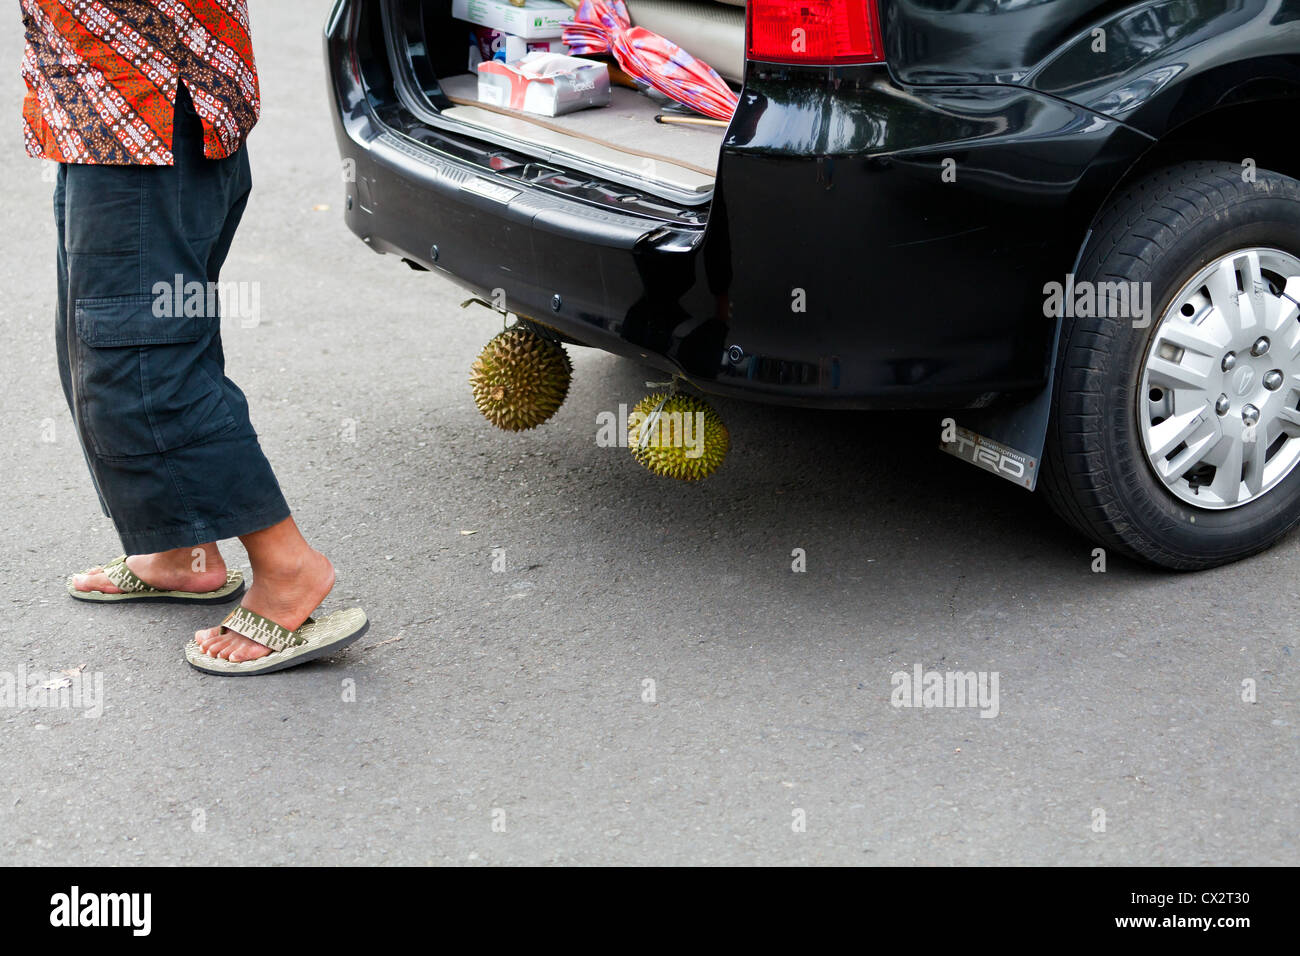 durians-hanging-under-a-car-on-bali-CX2T